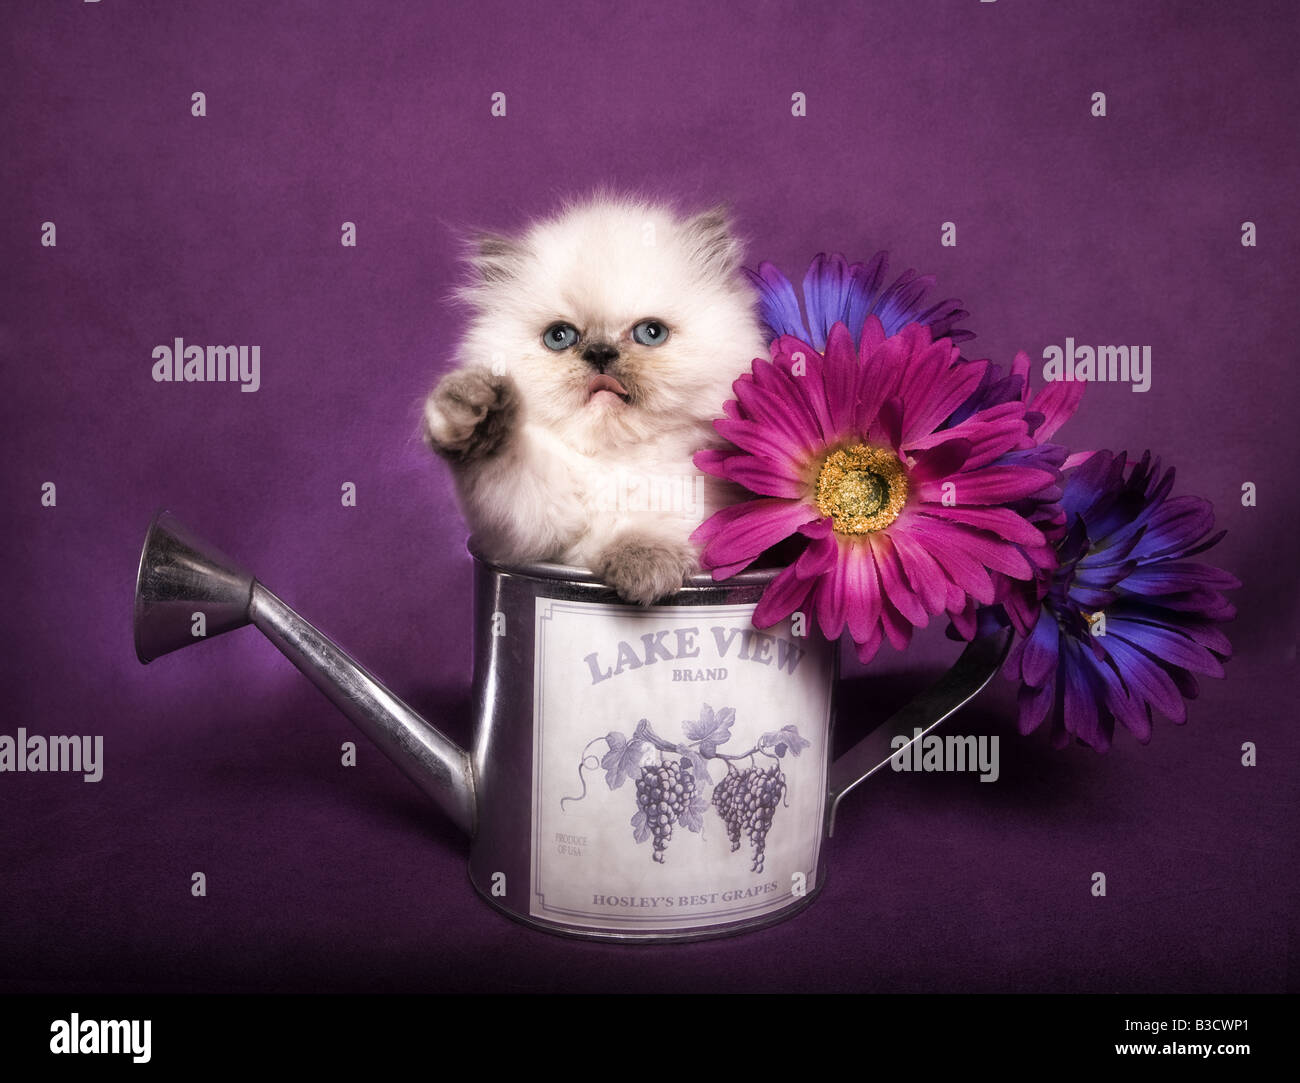 Cute torti point Himalayan kitten in watering can with flowers on purple background - Stock Image